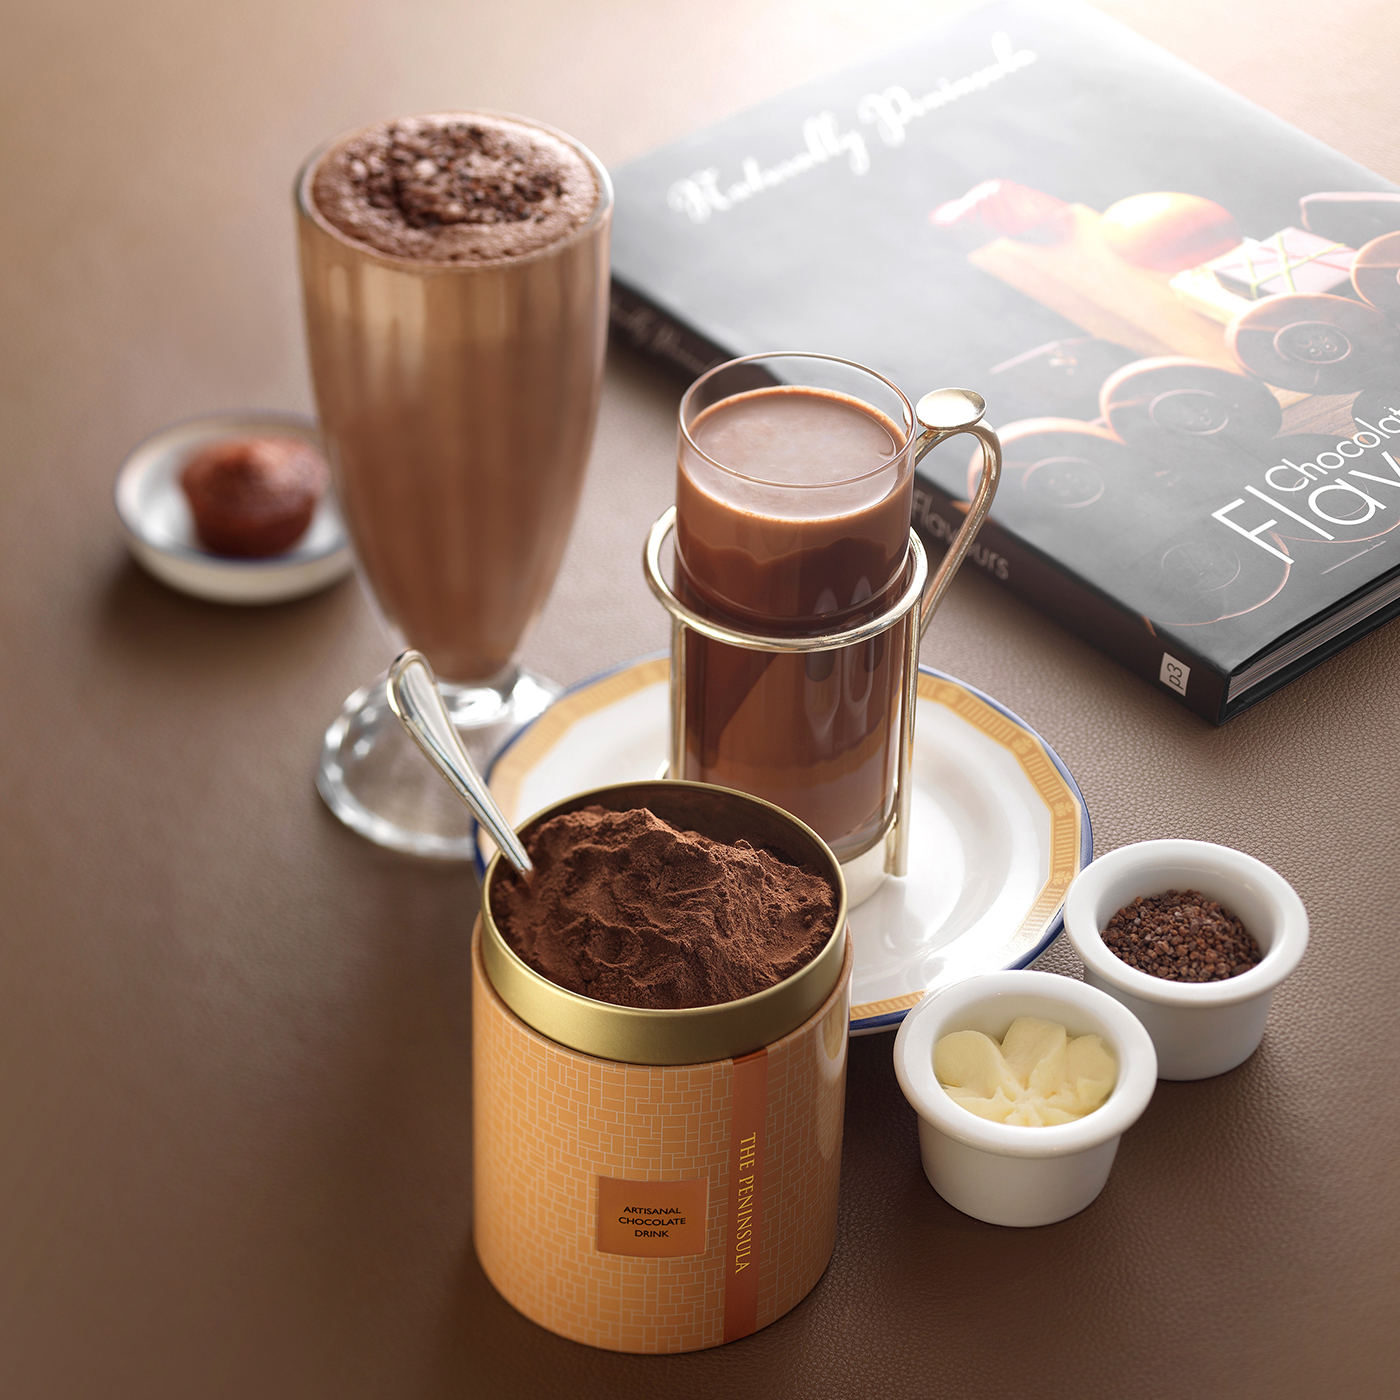 Artisanal Chocolate Drink - All-time Favourite at The Peninsula Lobby